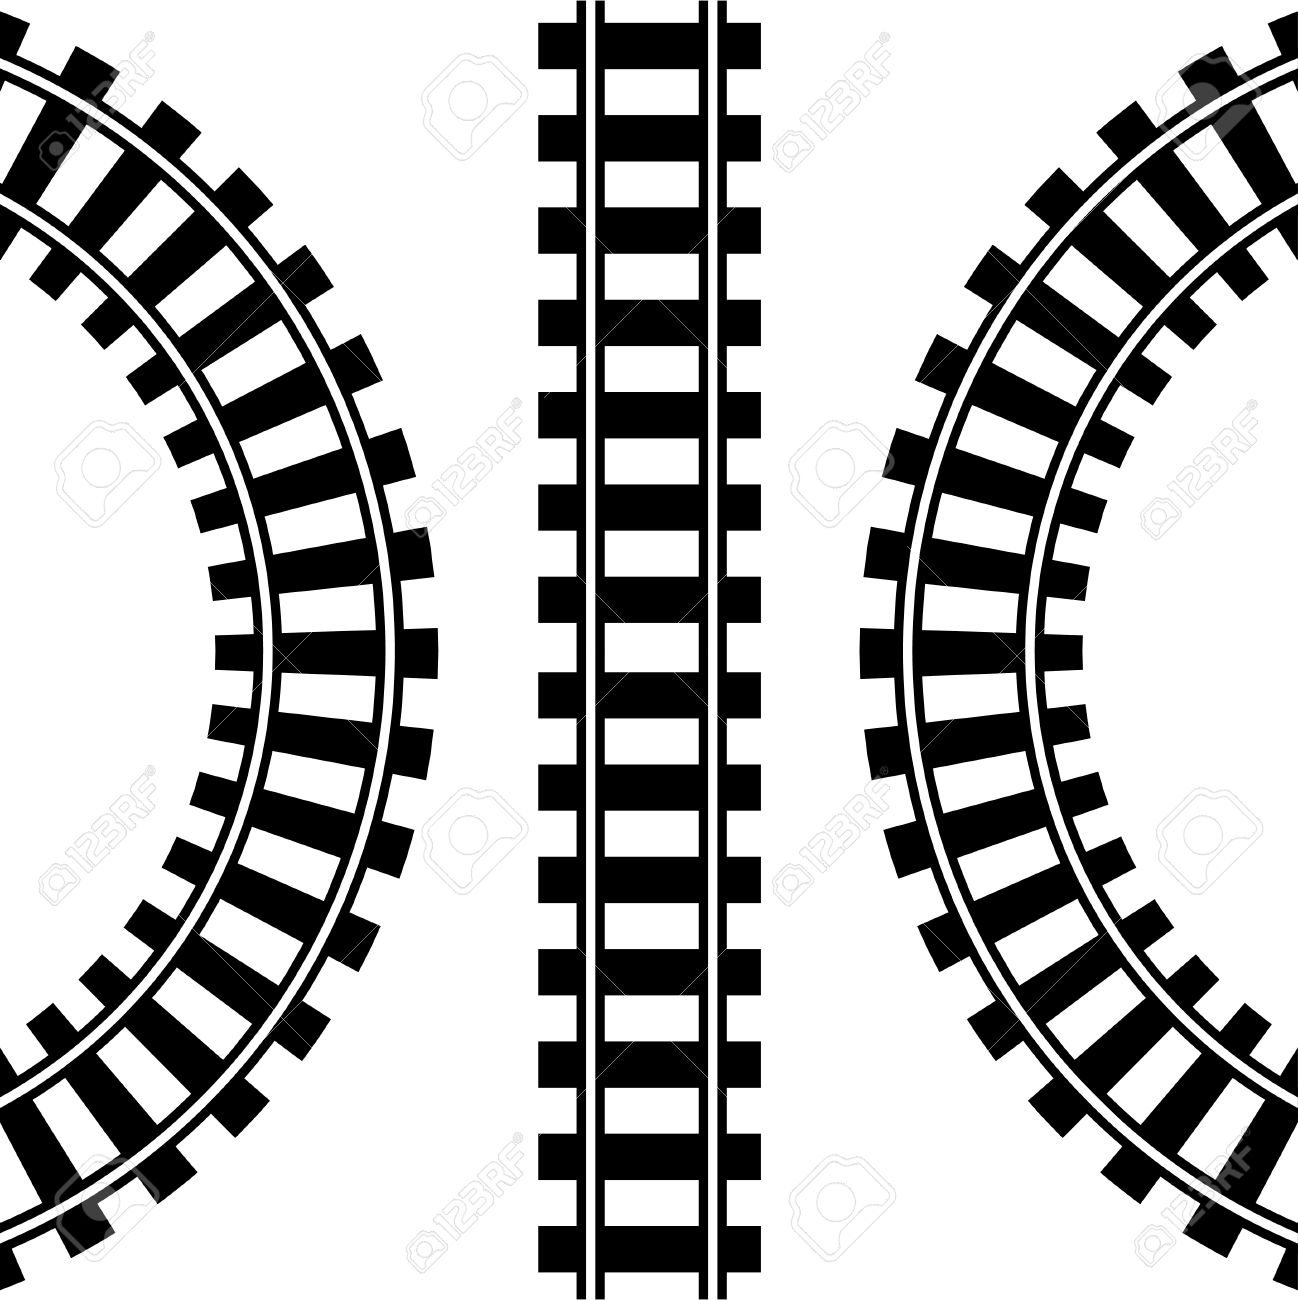 Fresh train tracks gallery. Track clipart